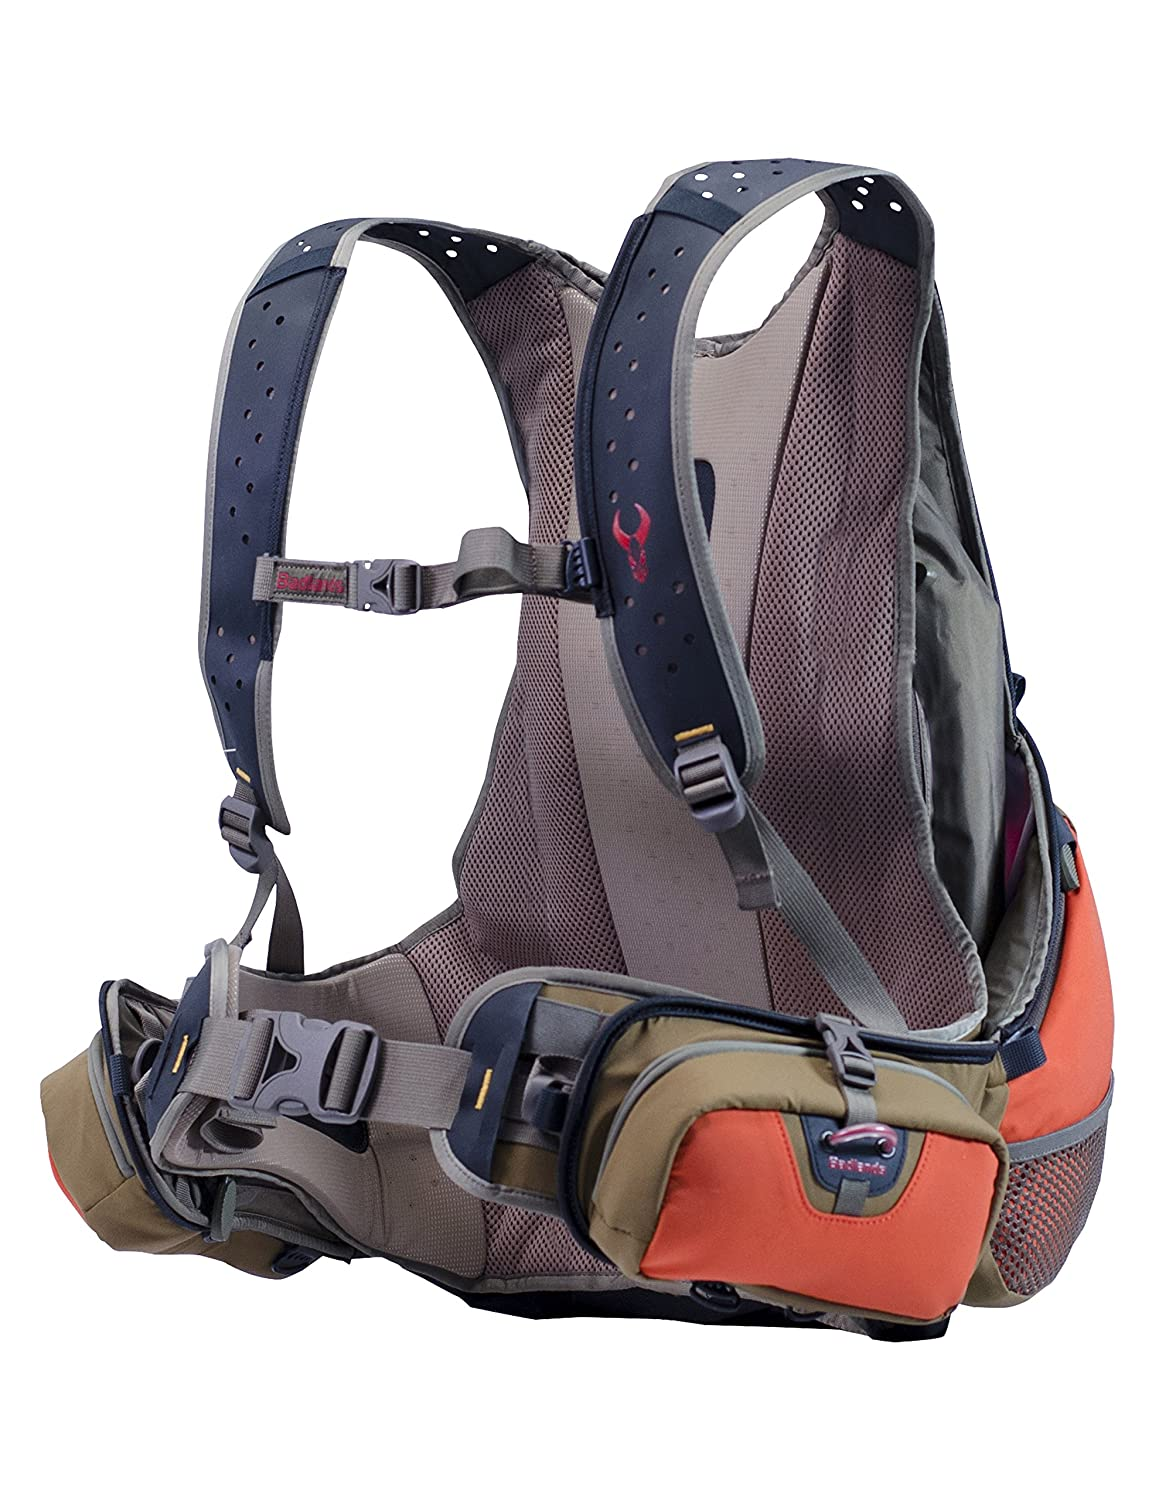 e2055cf0a5301 Bucks Bags Upland Bird Vest | Building Materials Bargain Center